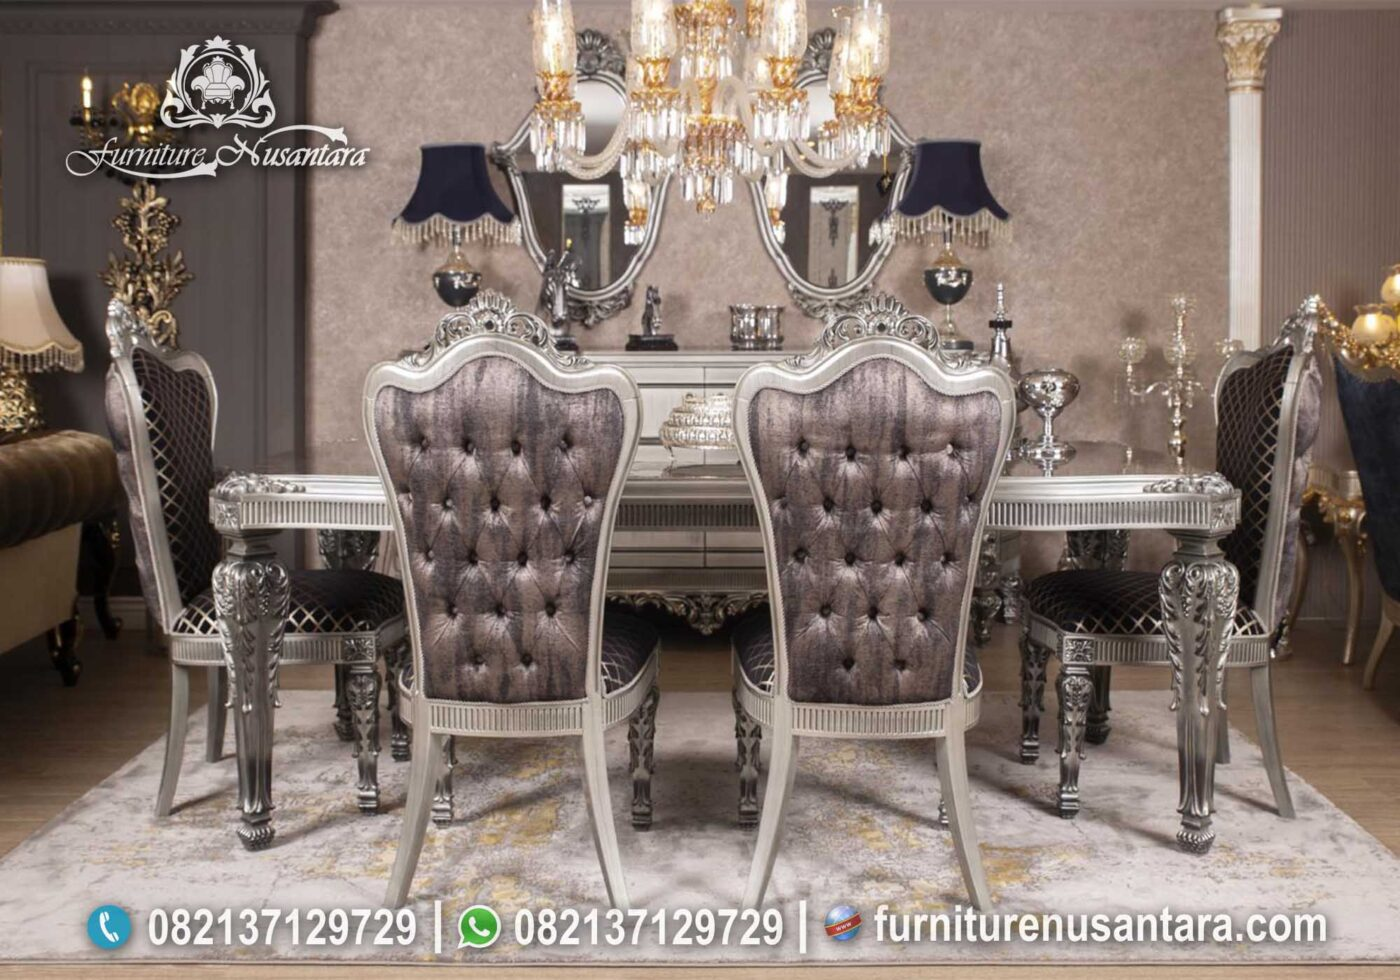 Set Meja Makan Silver Mewah MM-15, Furniture Nusantara